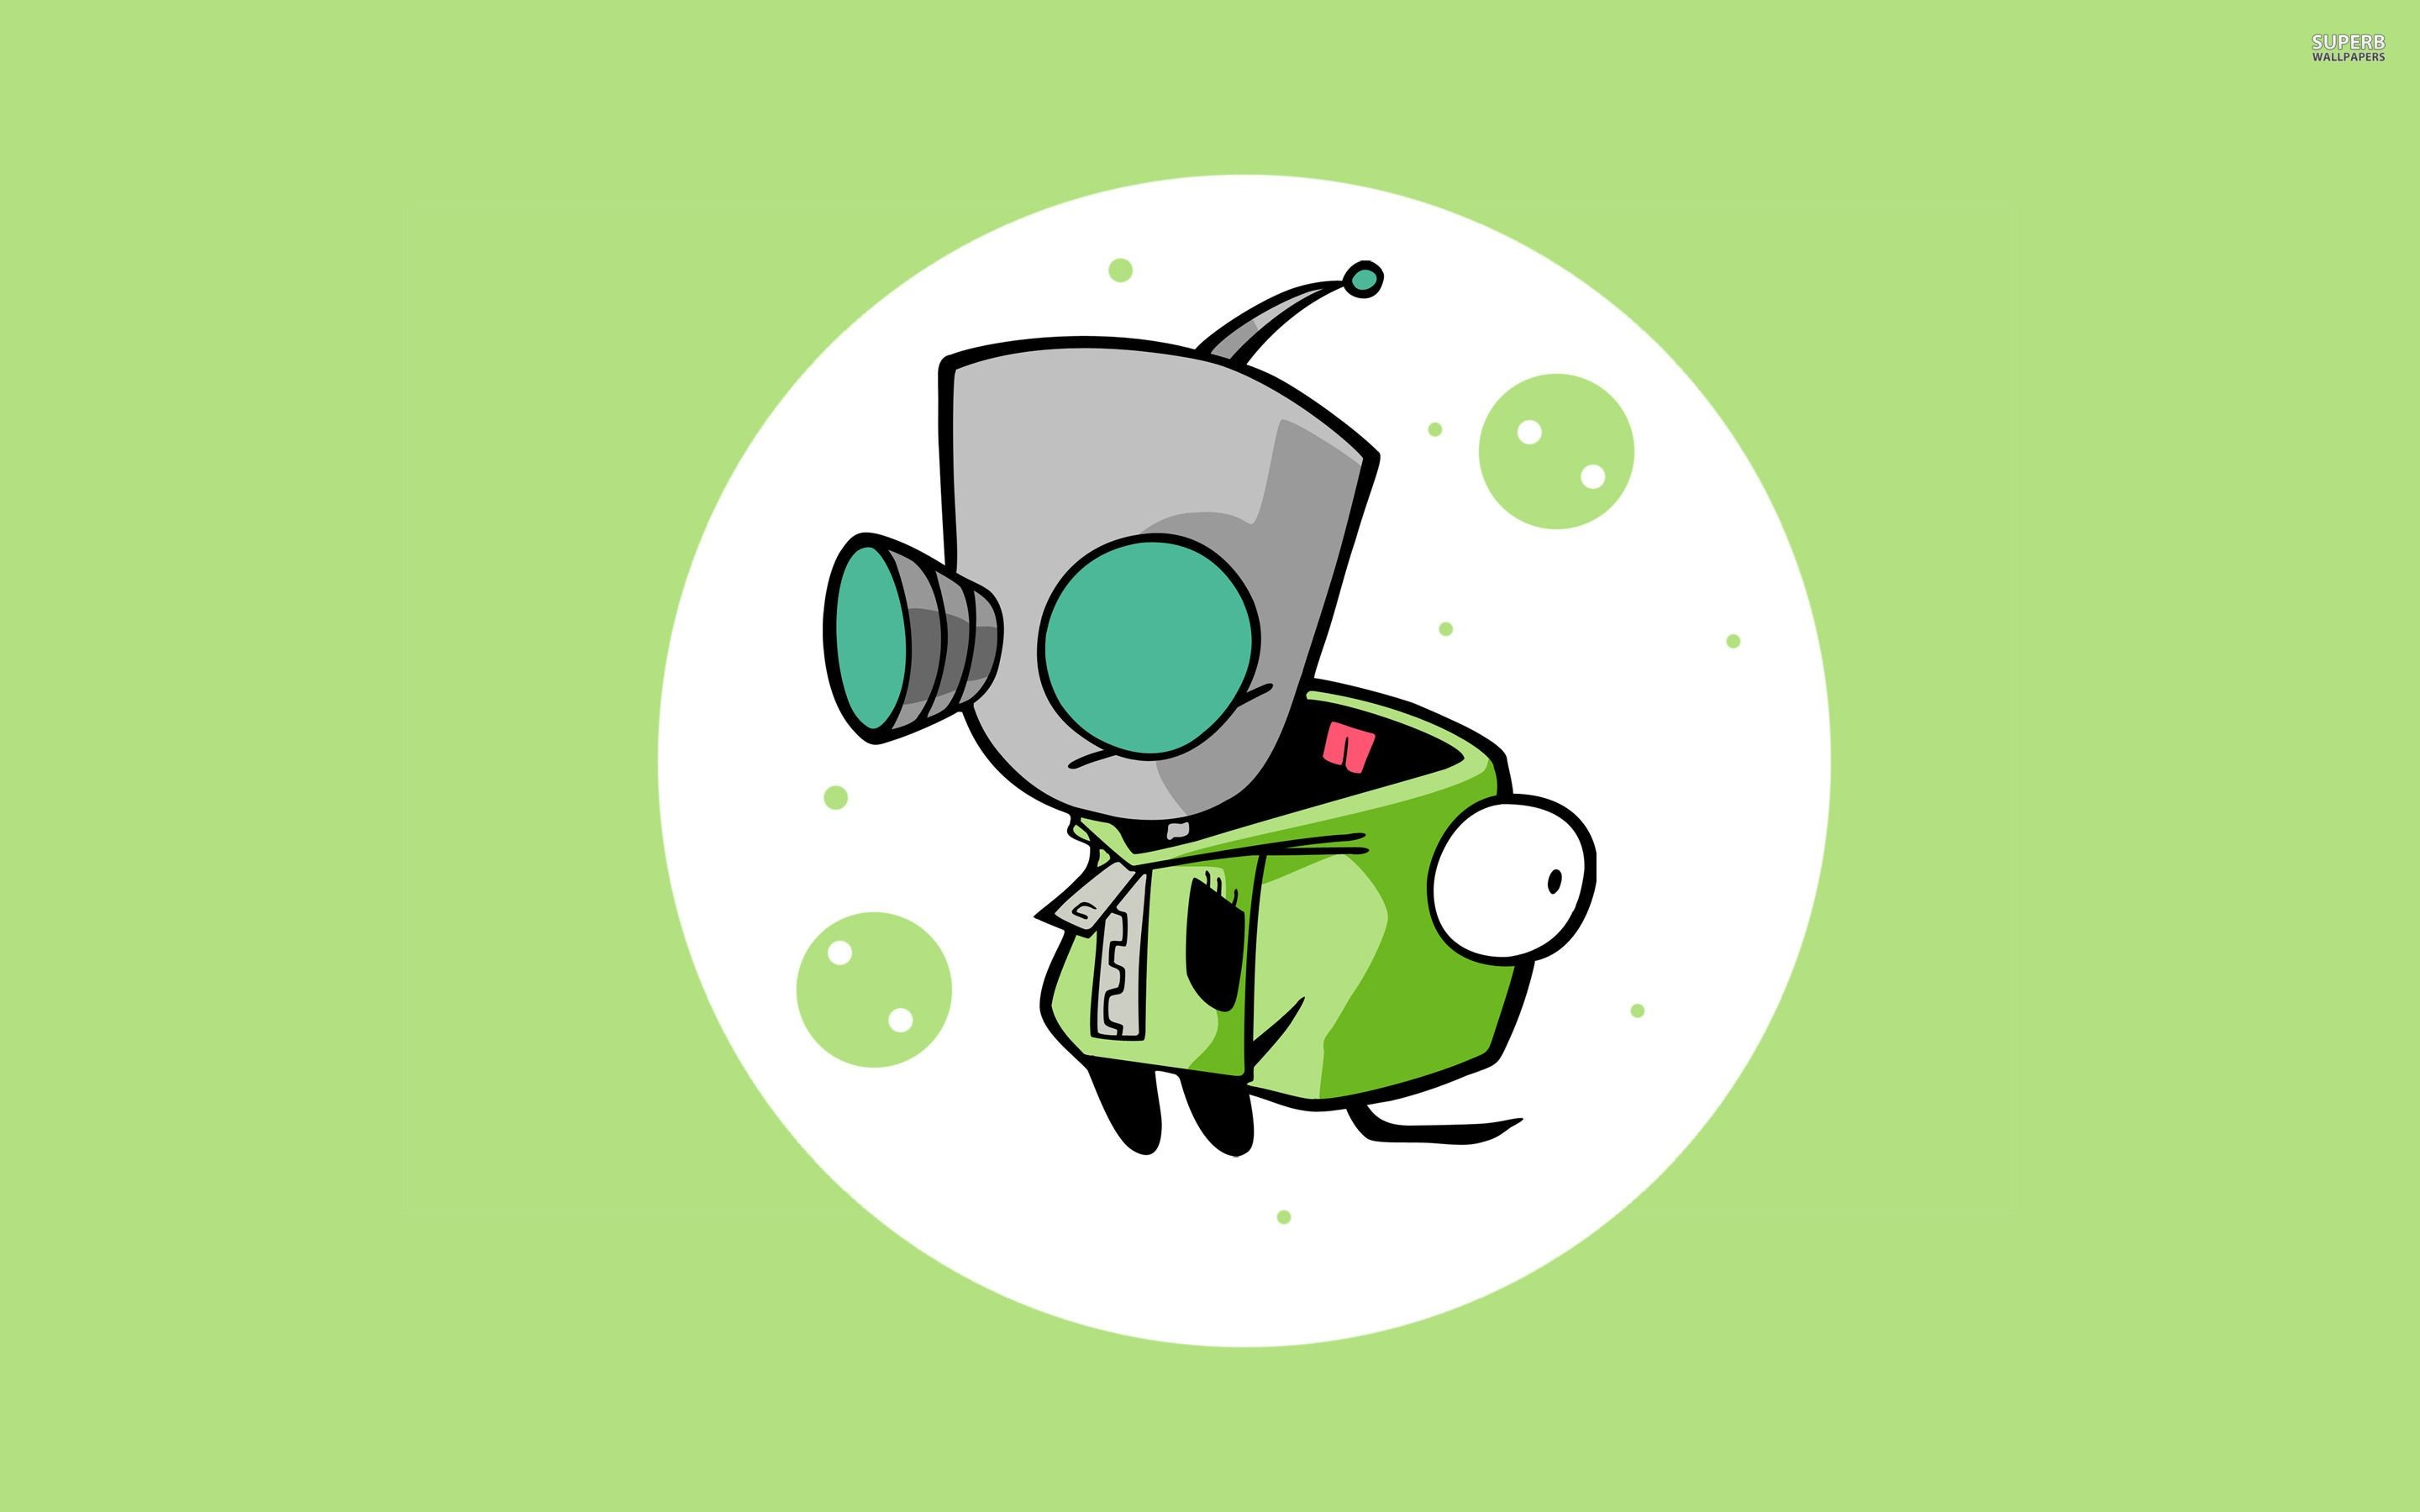 Amazing 2880x1800 Invader Zim Wallpaper | Best Cool Wallpaper HD Download | Images  Wallpapers | Pinterest